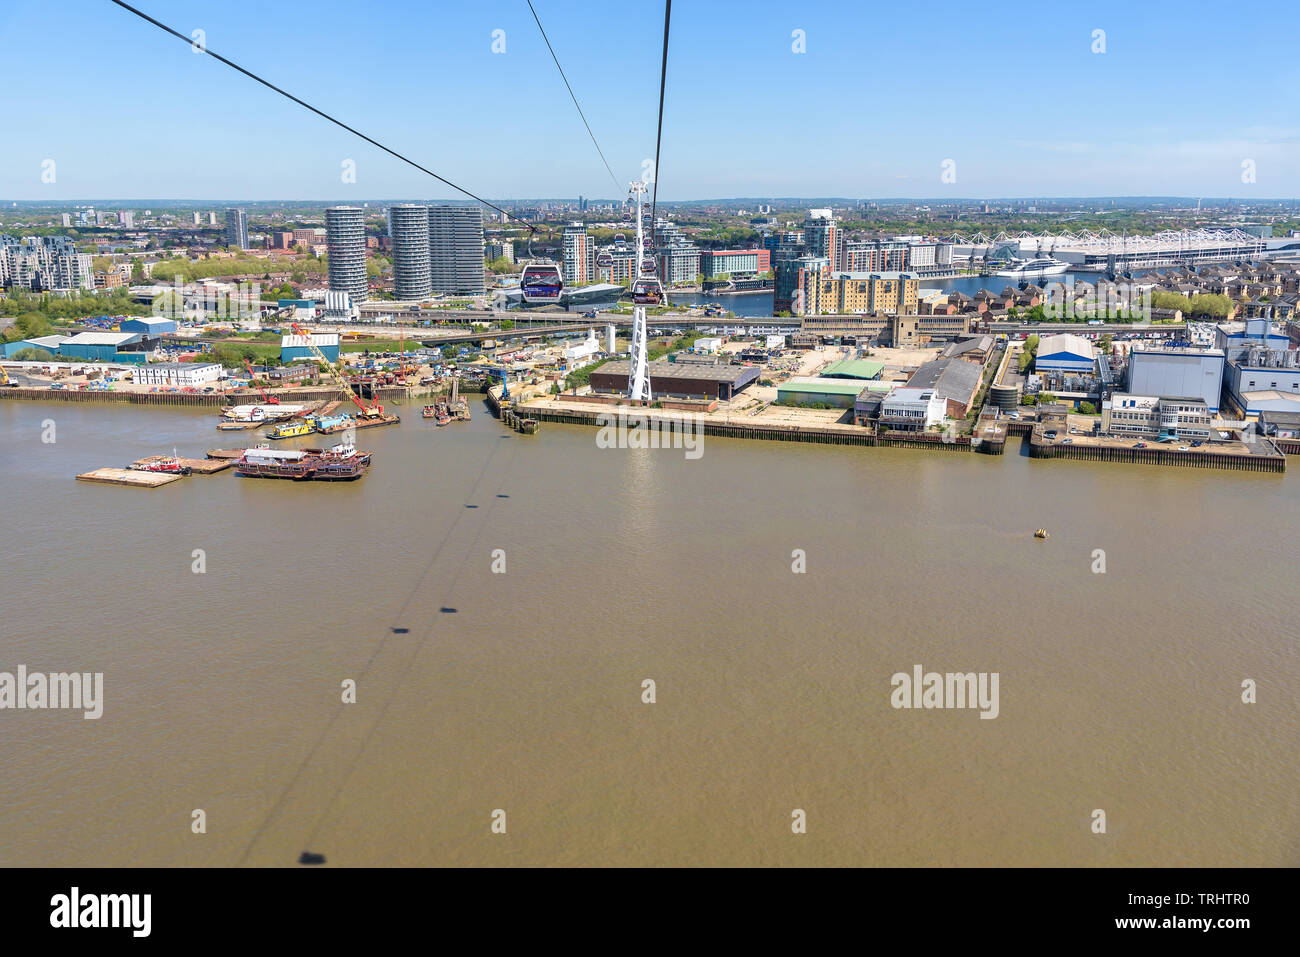 London, UK - May 1, 2018: Gondolas of Emirates Air Line go over River Thames in eastern London - Stock Image